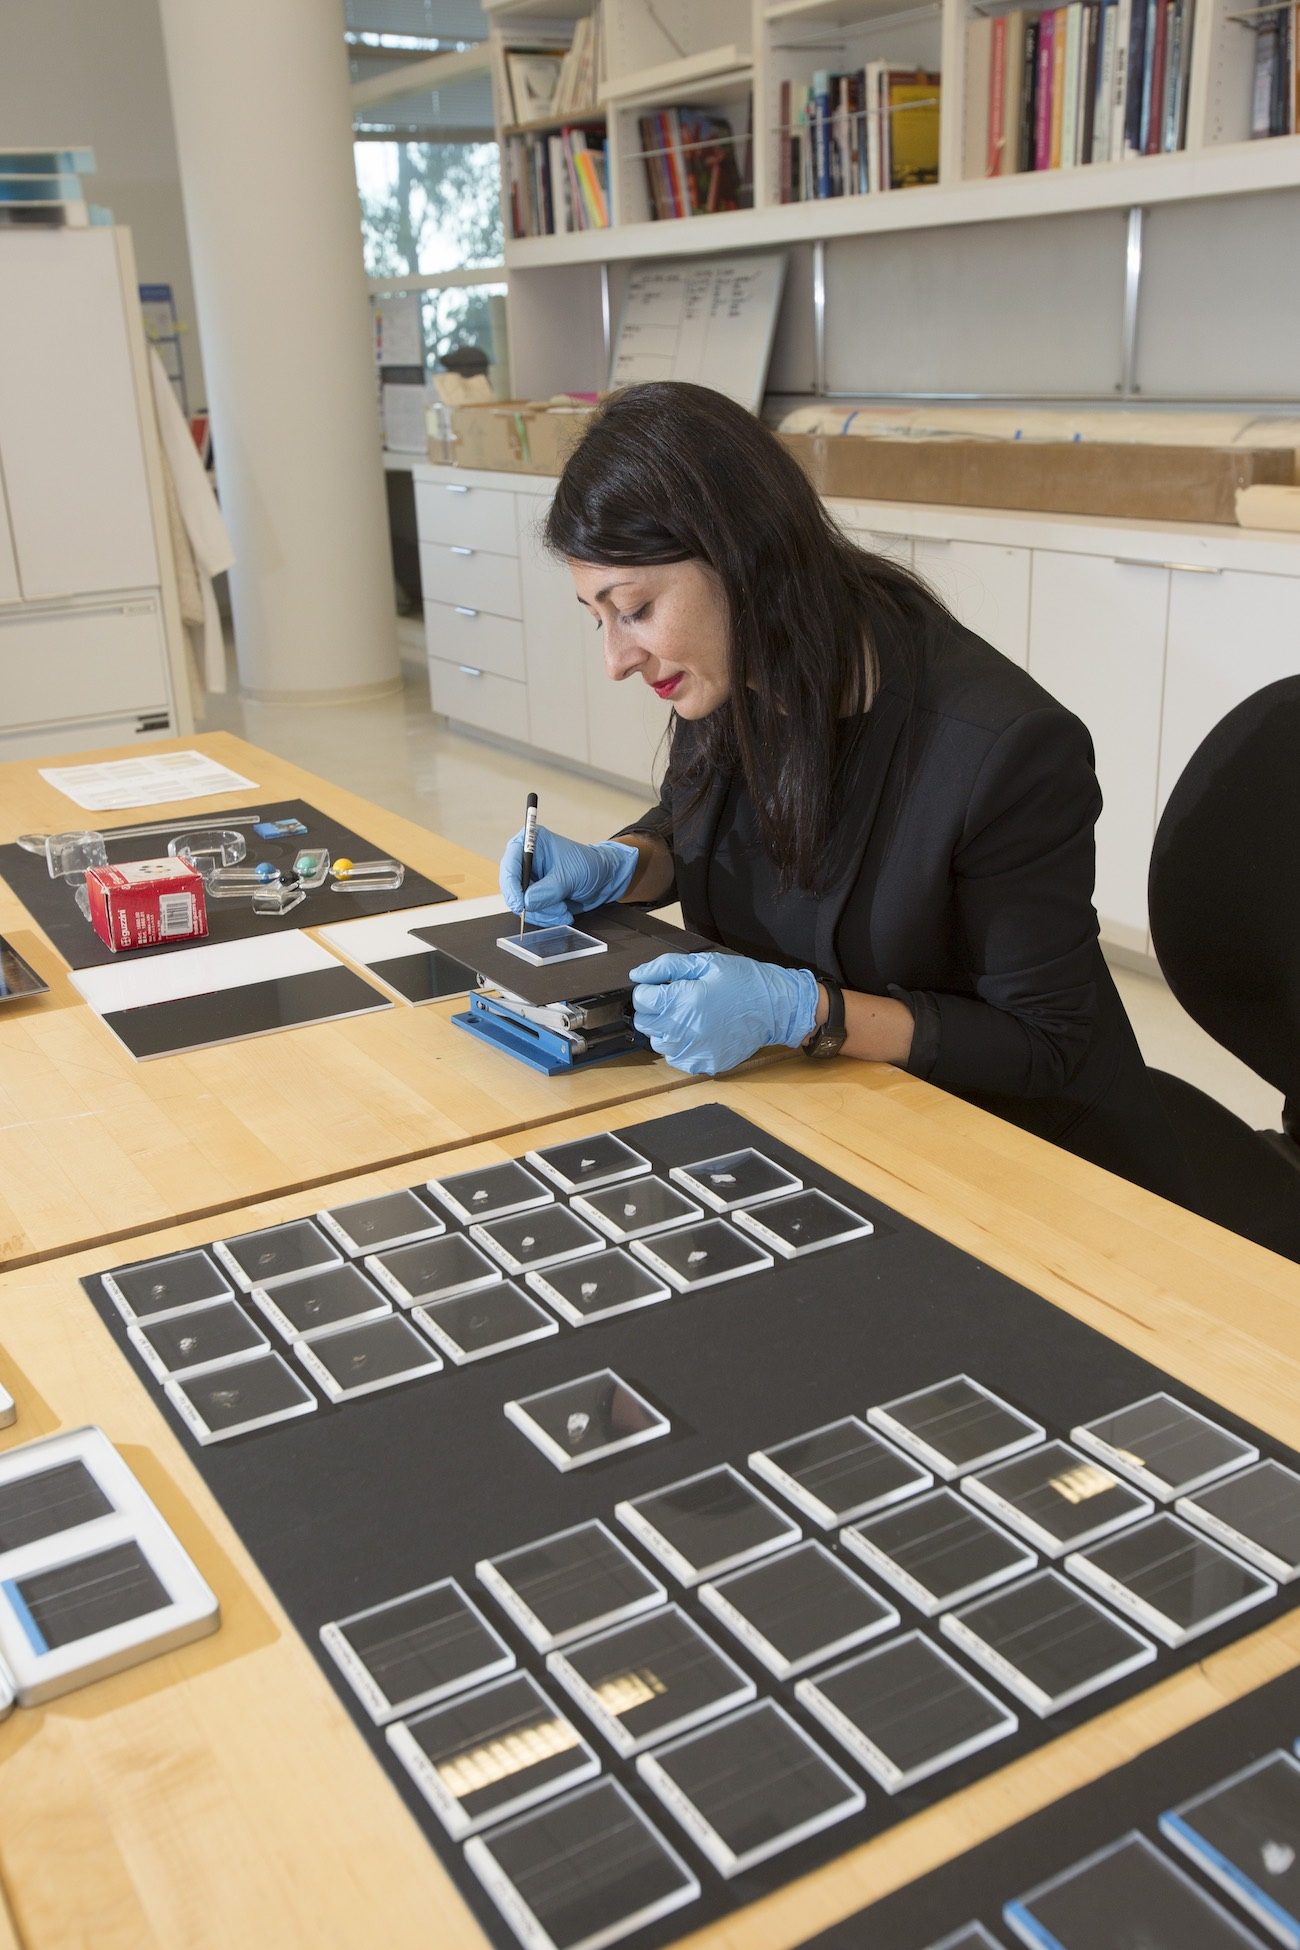 A woman with brown hair sits at a work table, working on plastics samples wearing blue gloves